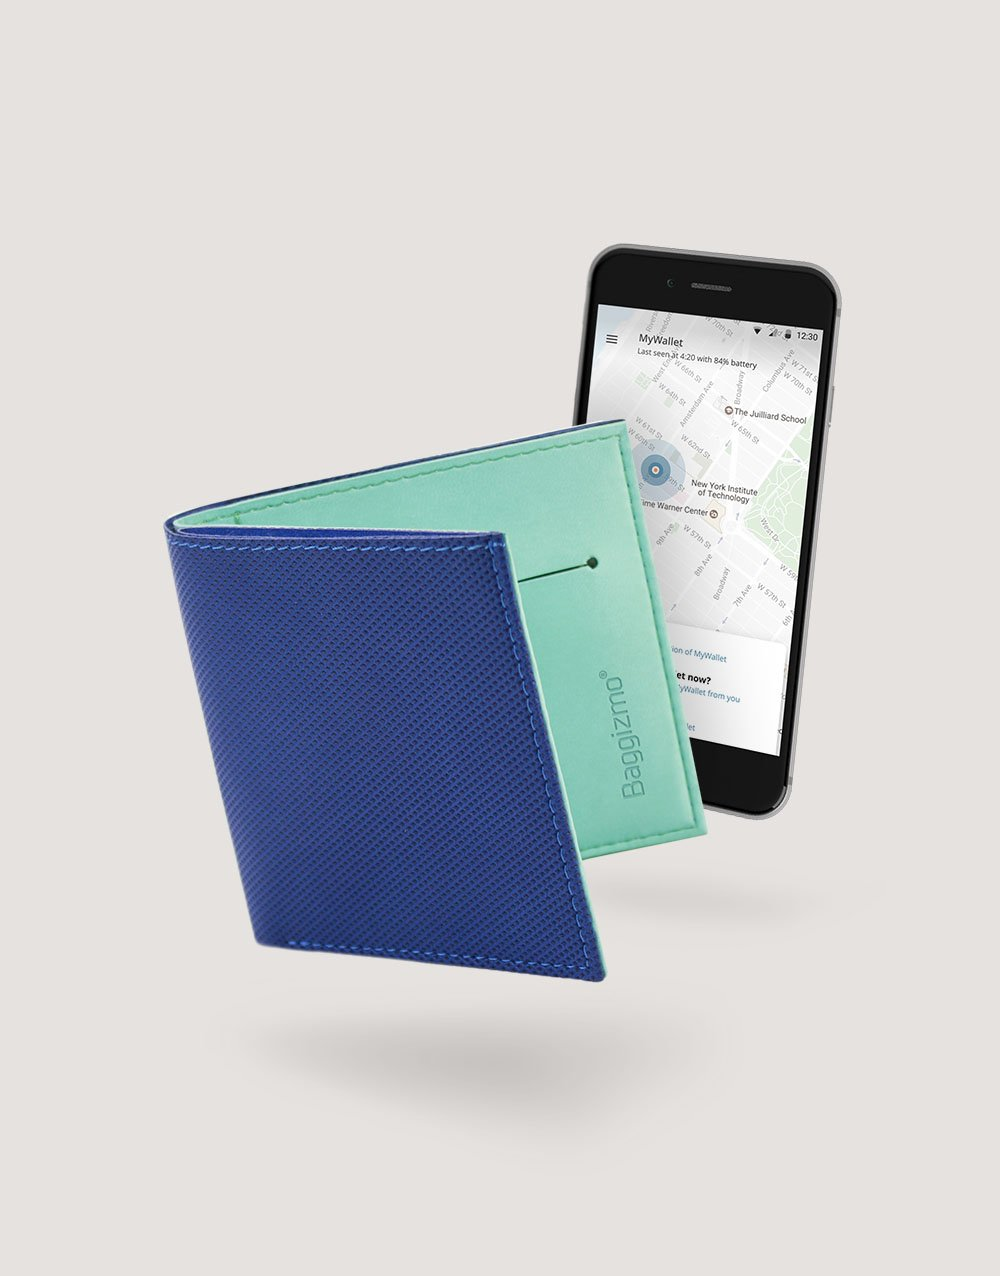 Baggizmo Wiseward smart wallet in true blue color and smart phone with Baggizmo app